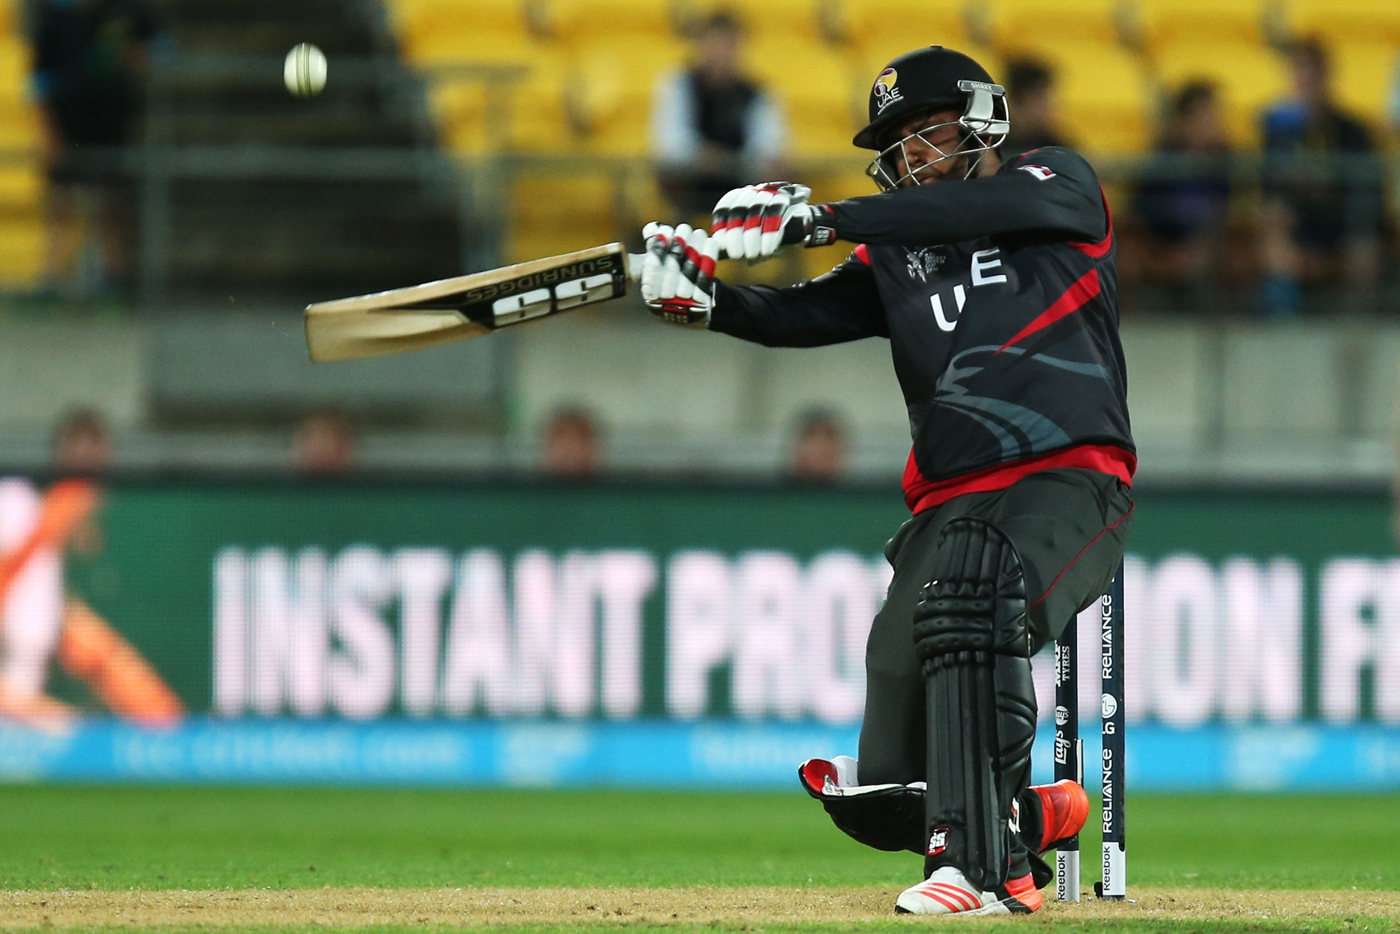 Naveed: beware the fast bowler with bat in hand